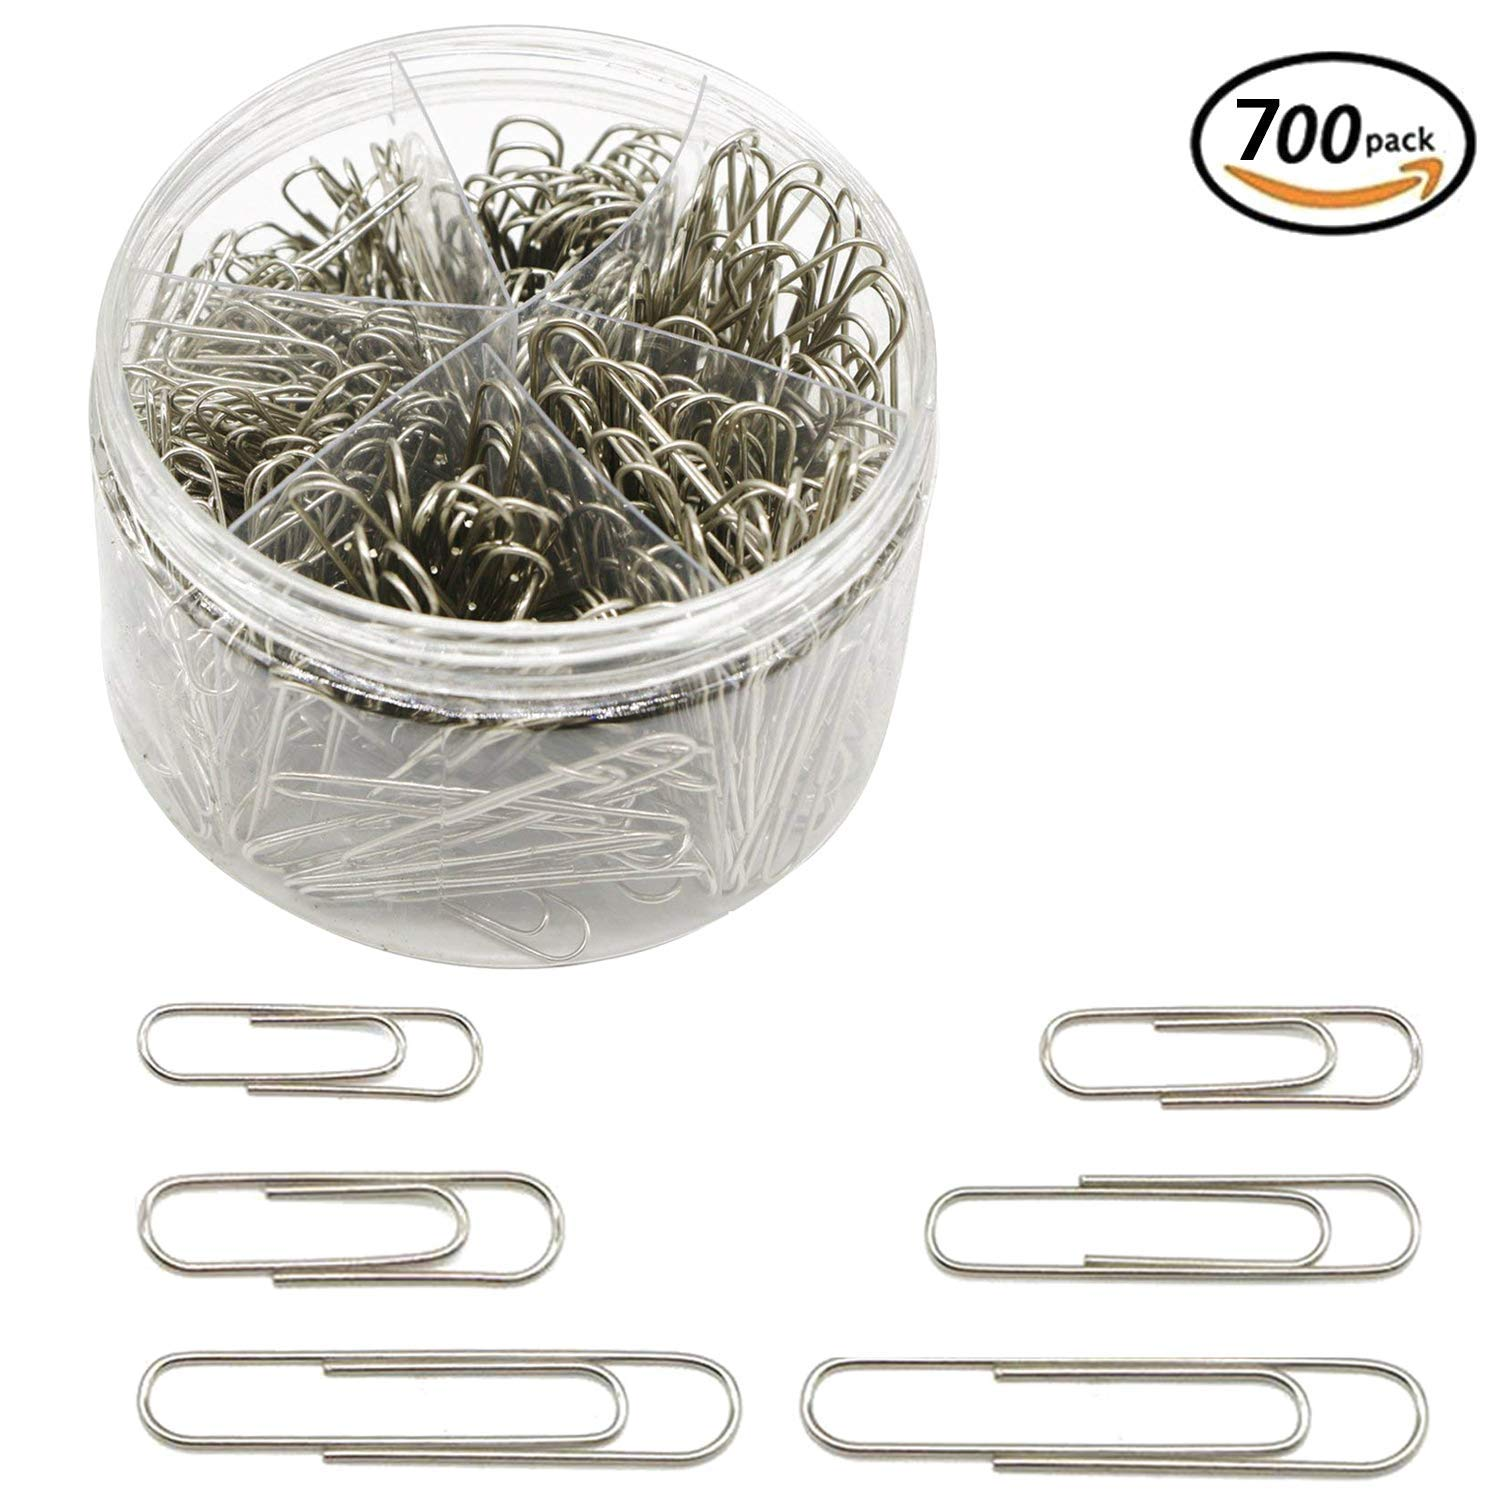 Paper Clips, 700 Pieces Sliver Paperclips, 28mm/33mm/50mm, Office Clips for School Personal Document Organizing Professional Work